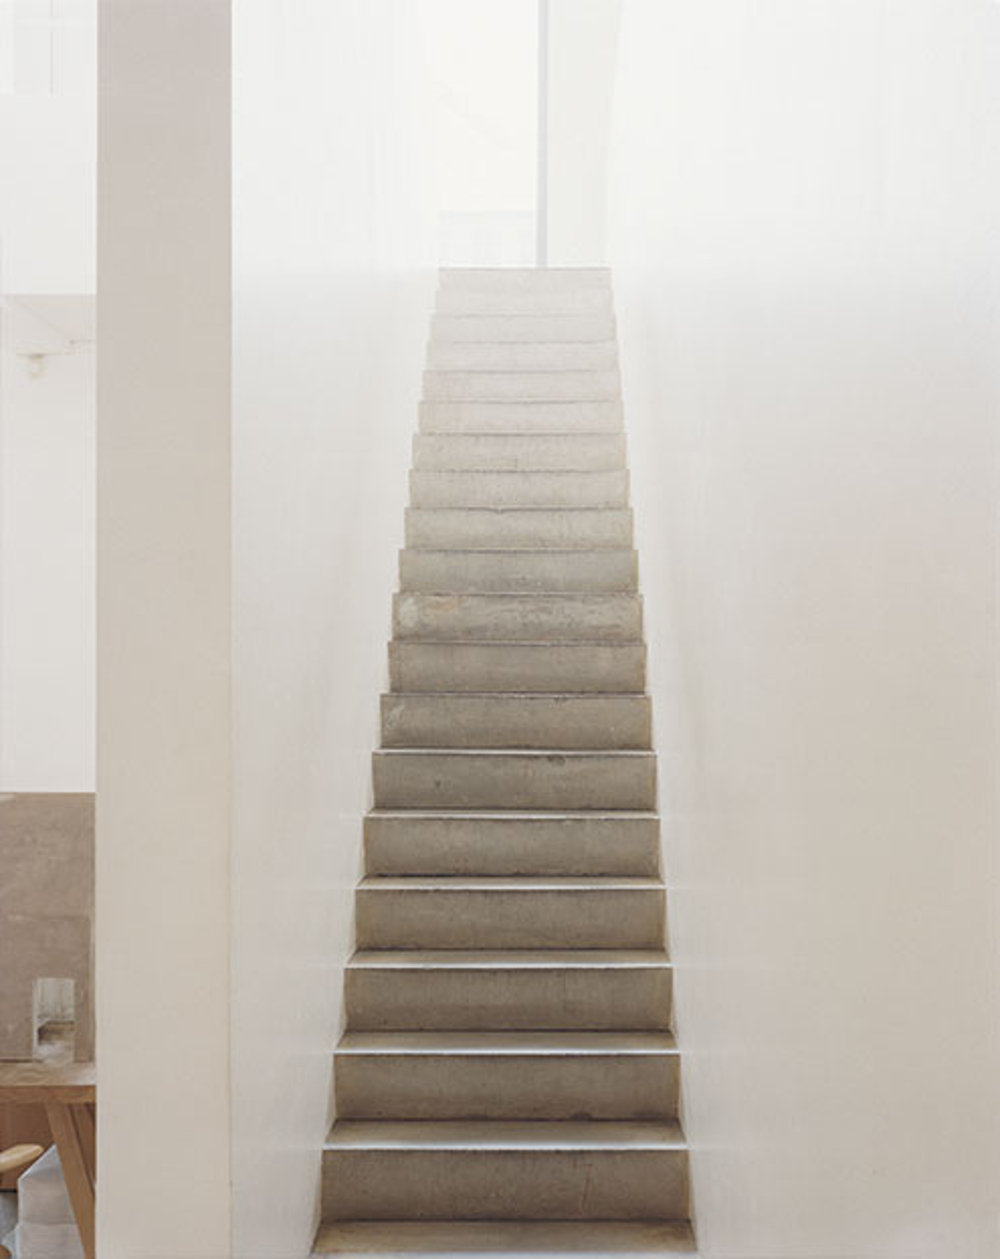 These stark concrete stairs in Pawson's studio are typical of his signature brand of minimalism